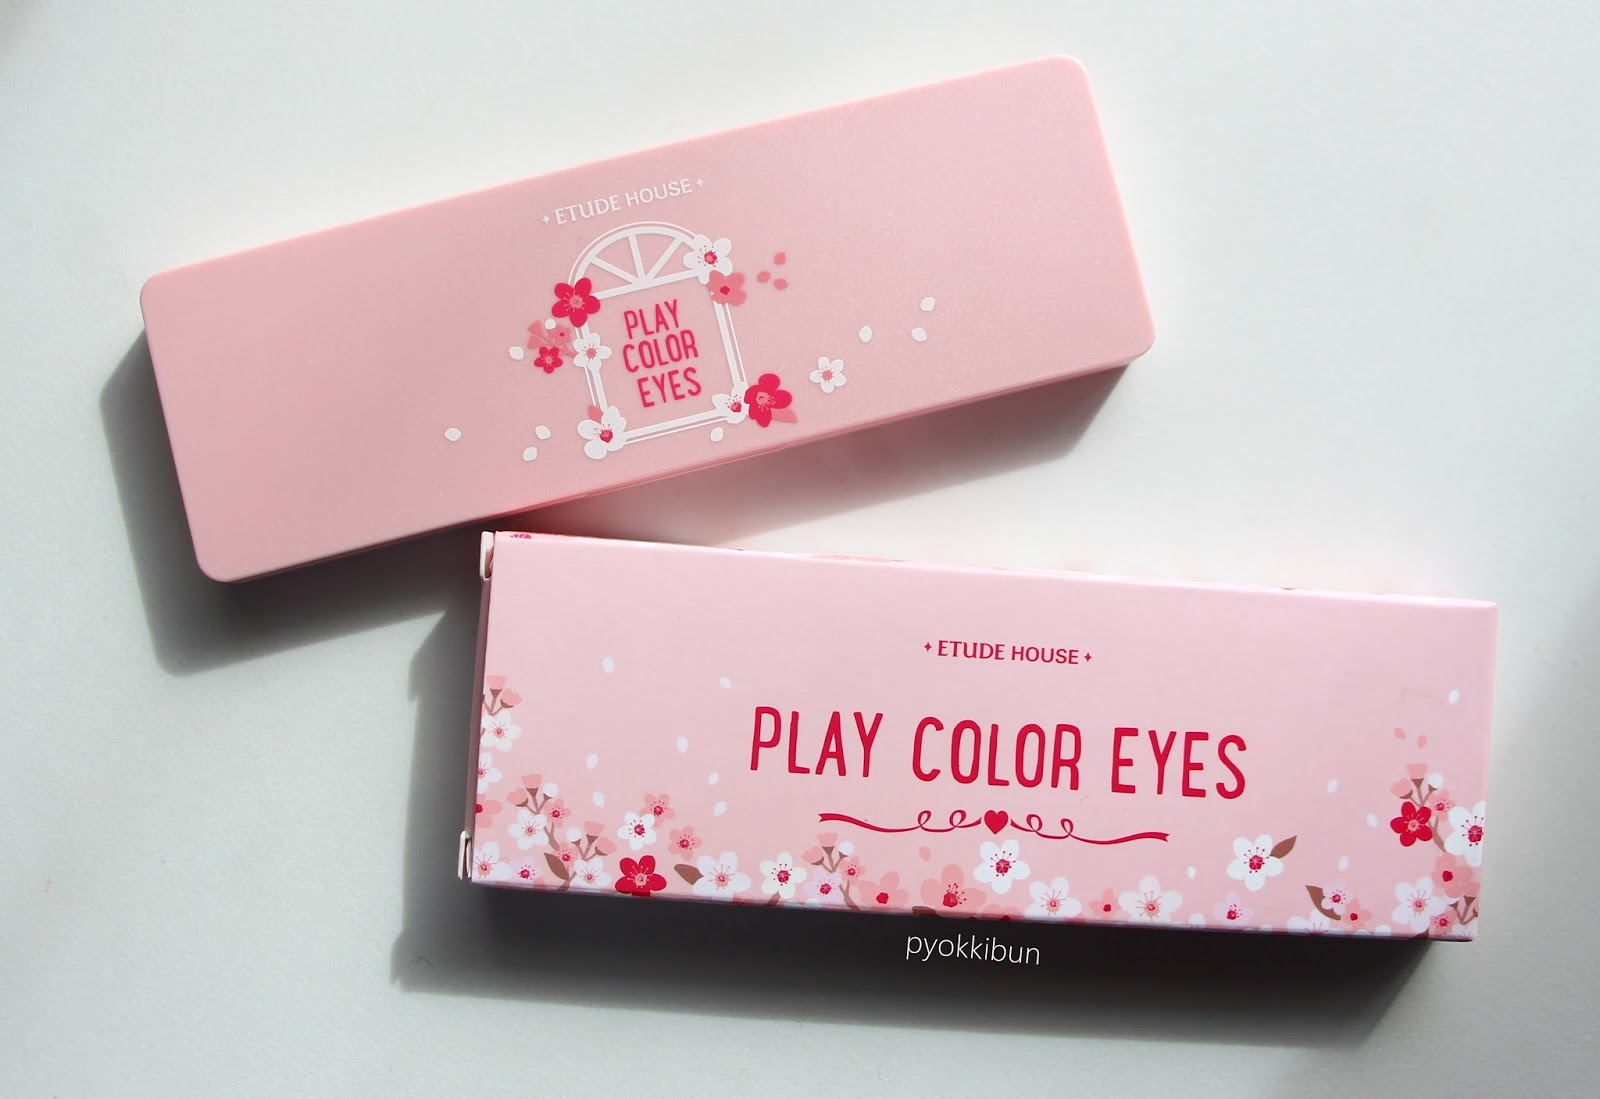 Etude House Play Colour Eyes in Cherry Blossom review - ♥ Pyokkibun ♥